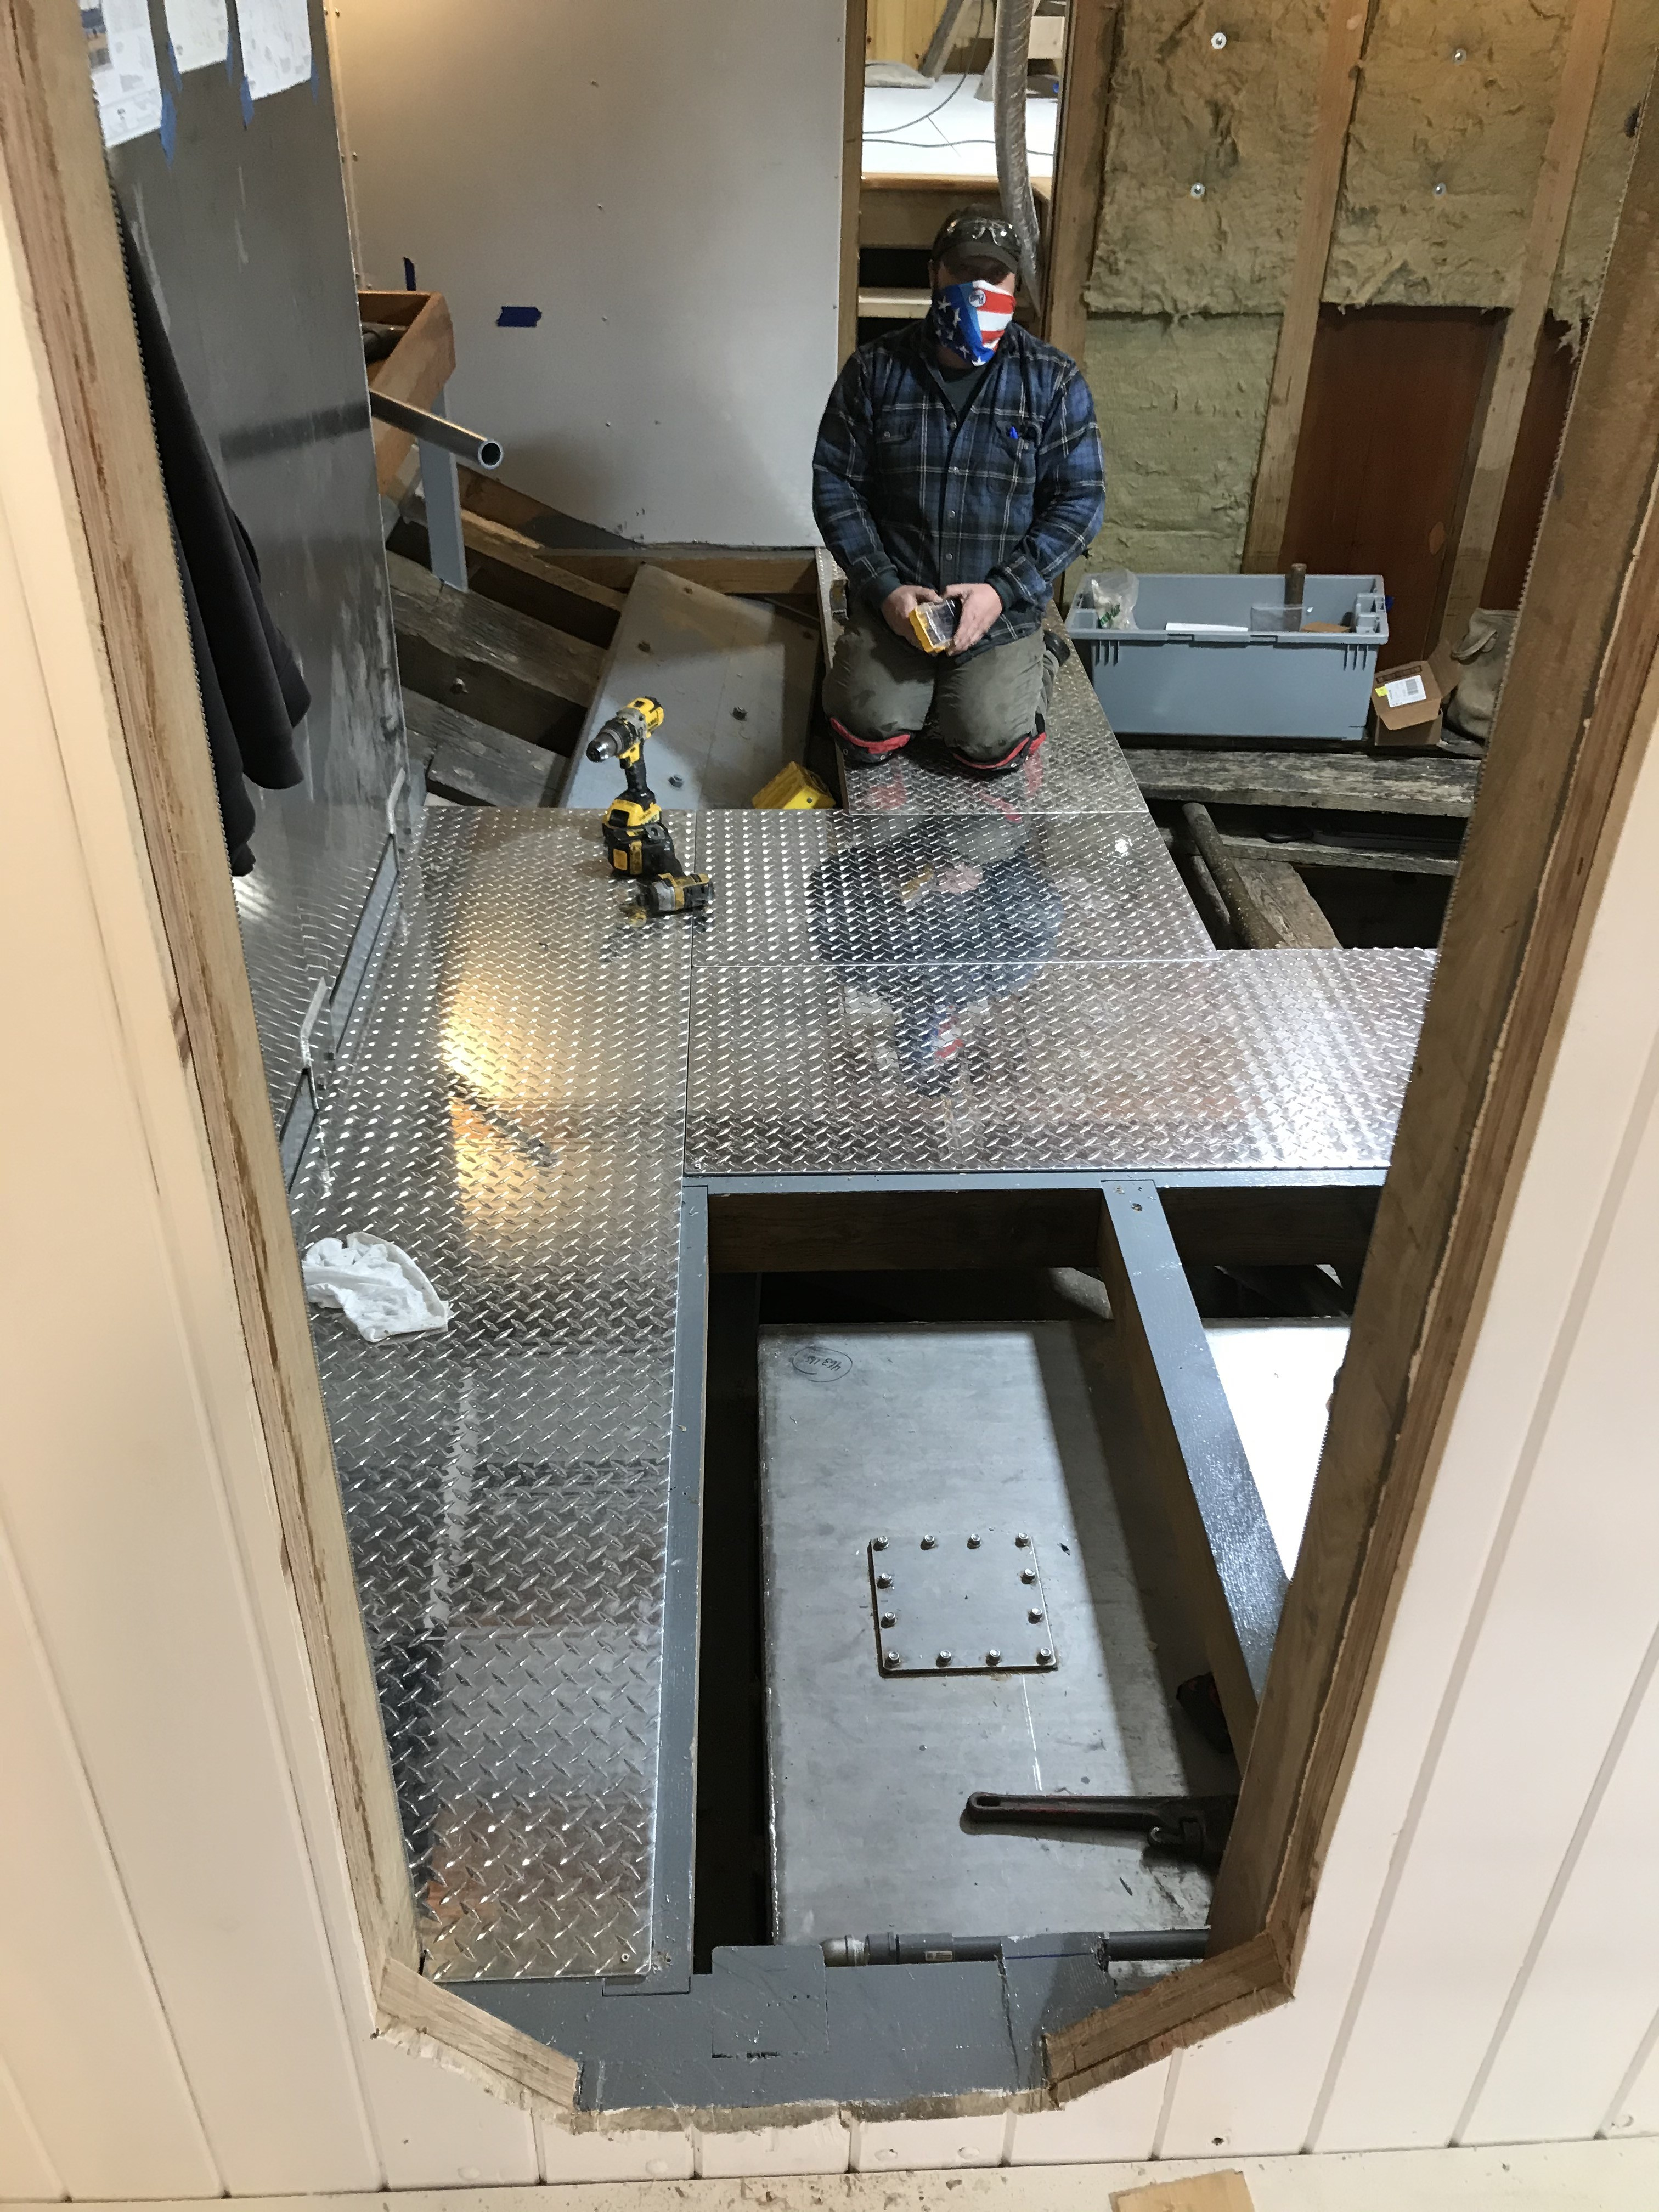 Jason Brassard is hard at work here installing the diamond plate flooring in the engine room.  Each piece of high-quality aluminum flooring is custom fitted according to the spacing and arrangement of the sole beams that run athwartship.  Special consideration is also given to maintenance and regular use of the ship's systems.  Certain pieces of this plate flooring will be conveniently secured to allow for quick lift out access to machinery spaces that will exist below the floor level